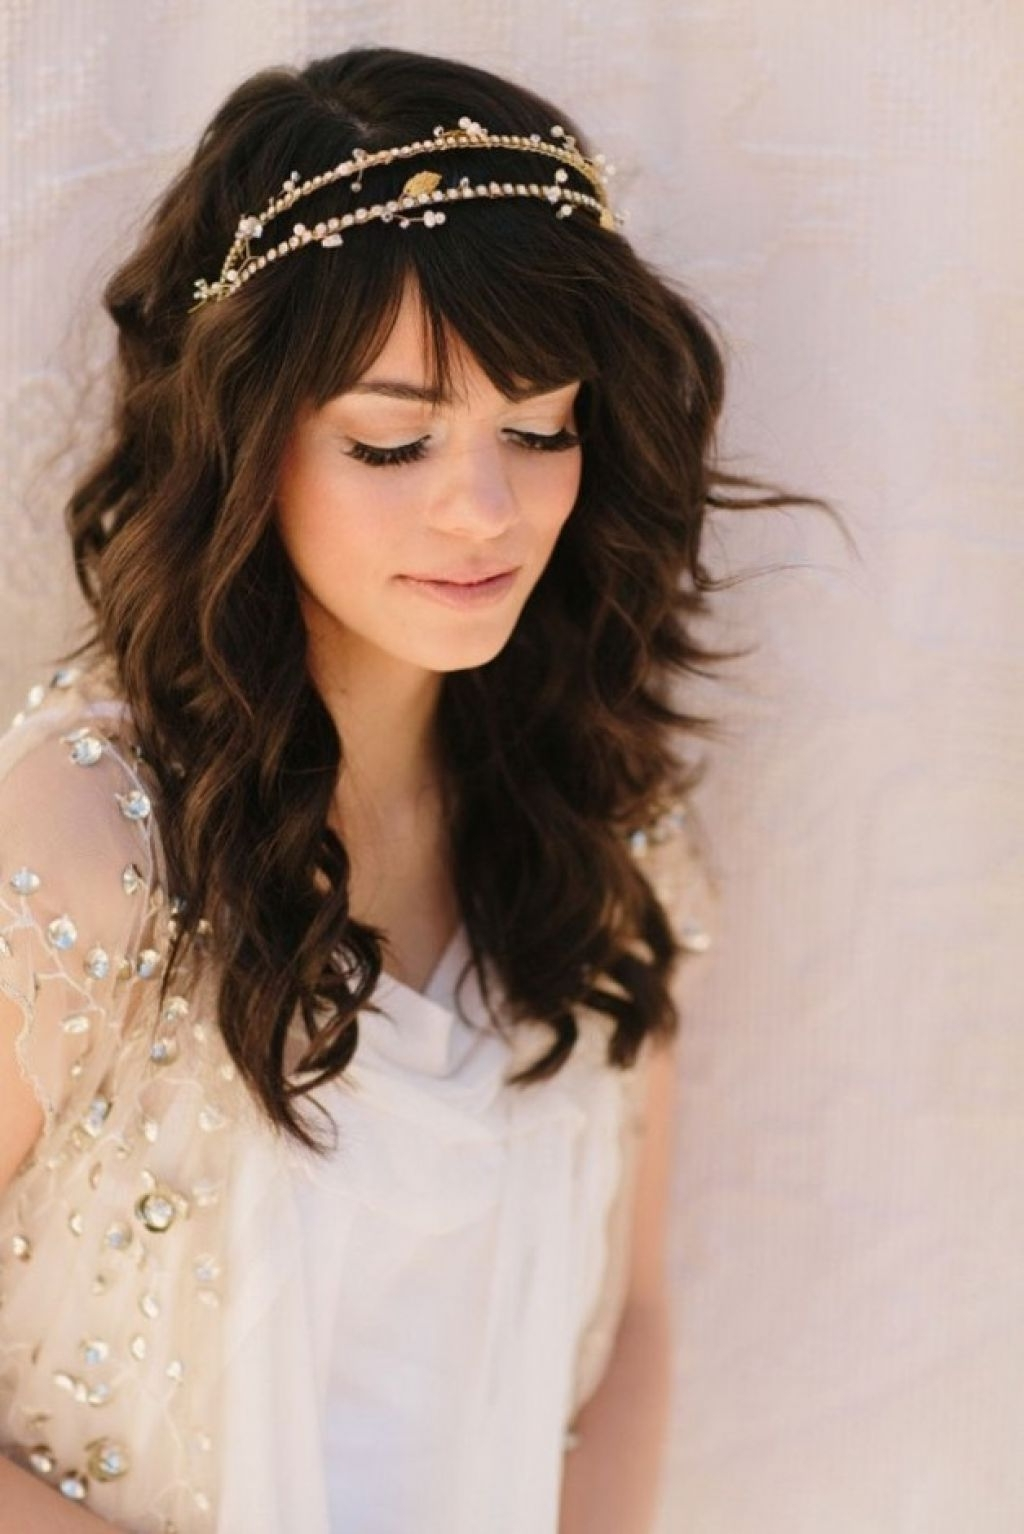 60+ Wedding & Bridal Hairstyle Ideas, Trends & Inspiration – The Xerxes Regarding Most Popular Wedding Hairstyles For Long Hair With Bangs (View 3 of 15)